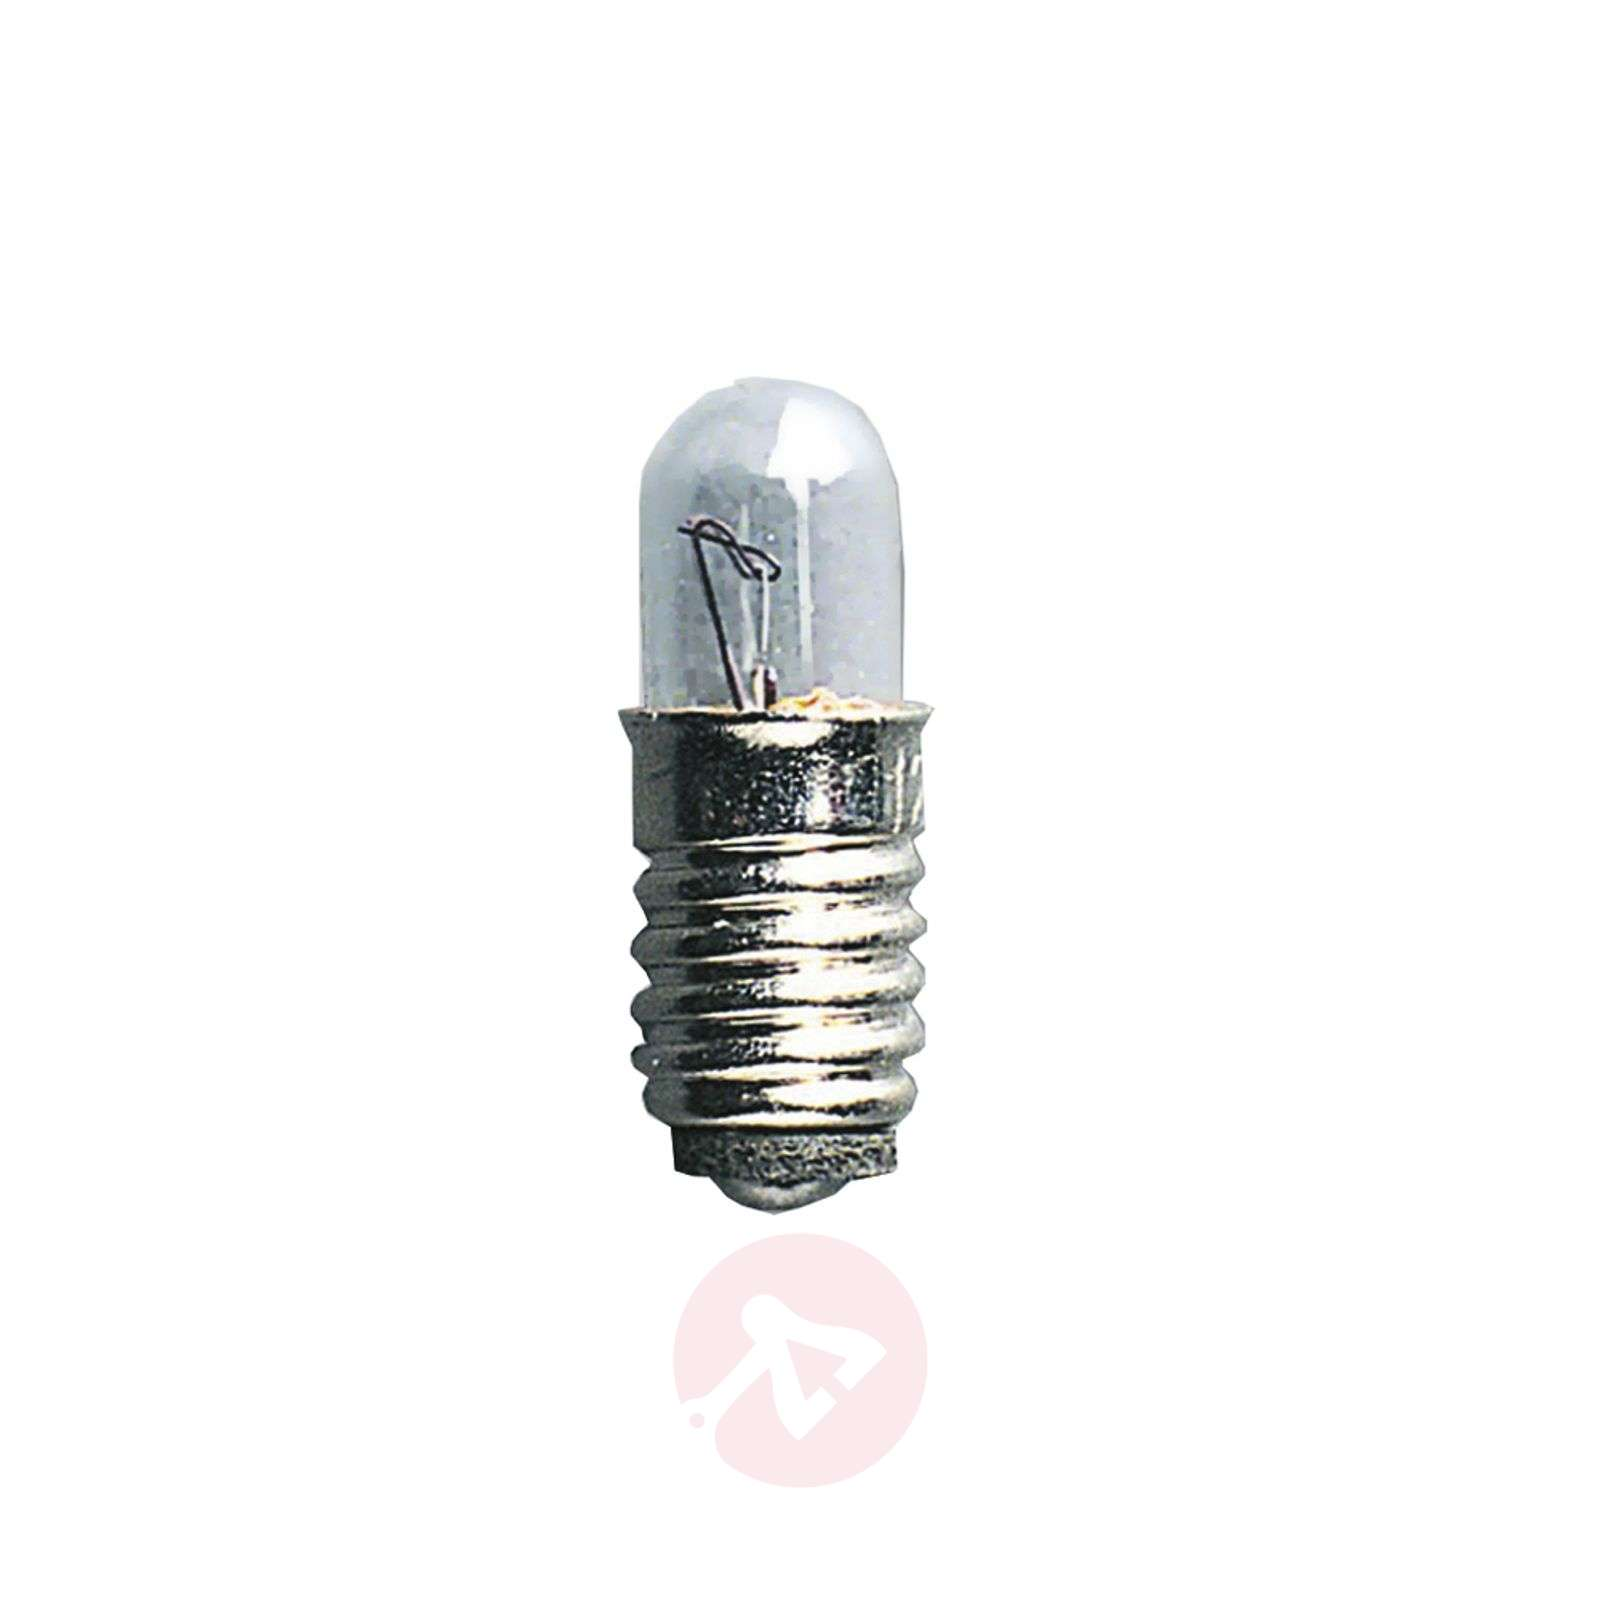 E5 1.2 W 12V bulbs LV window candle set of 5-1522095-01